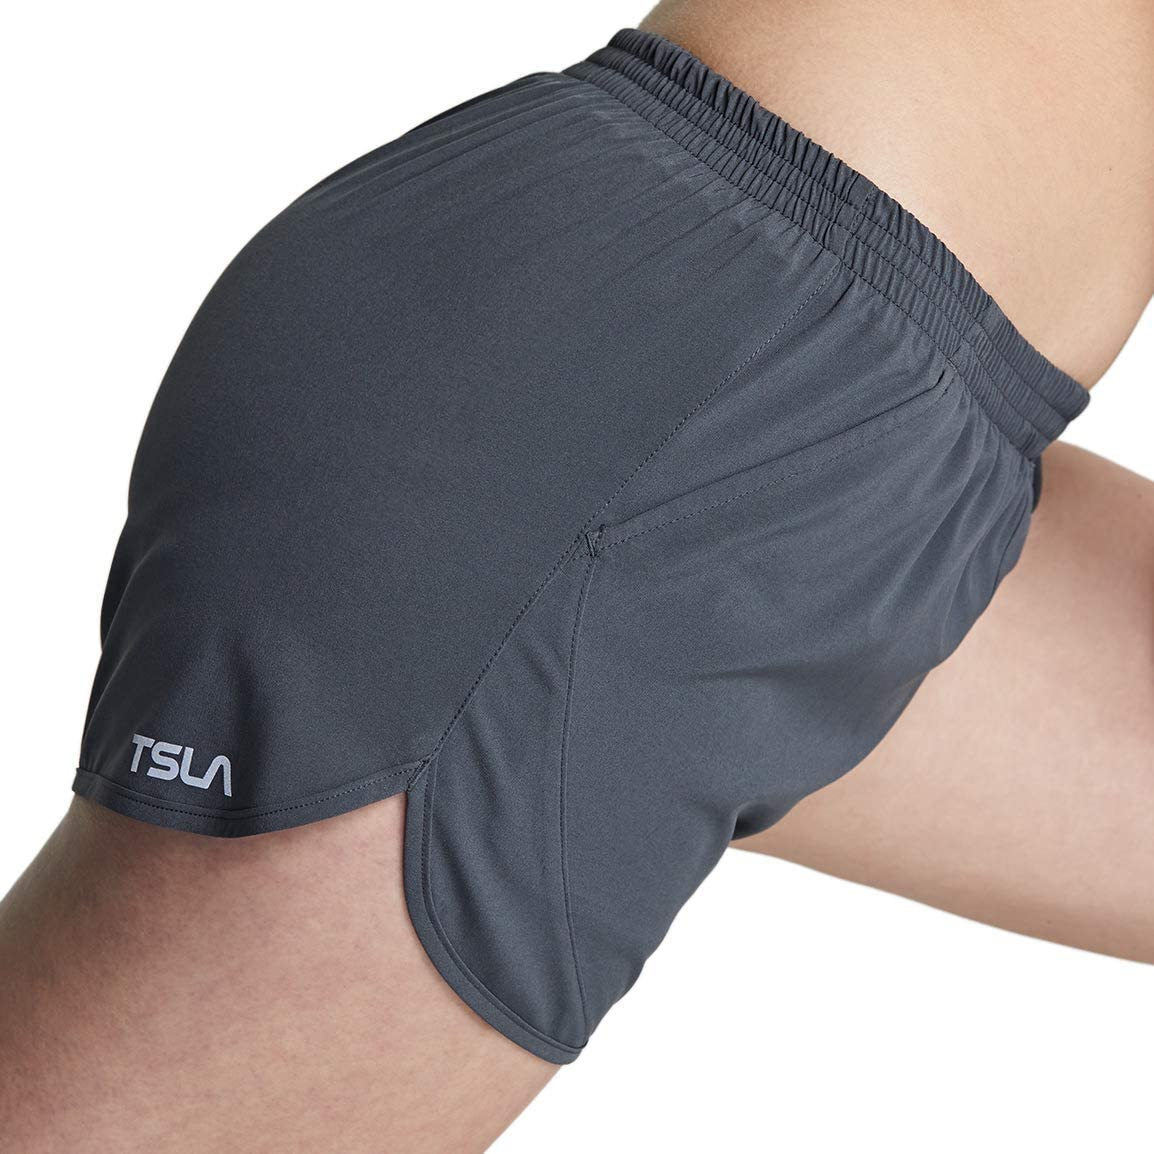 Dry Fit Active Sports Workout Shorts TSLA 1 or 2 Pack Womens Running Shorts Gym Exercise Athletic Short with Pockets